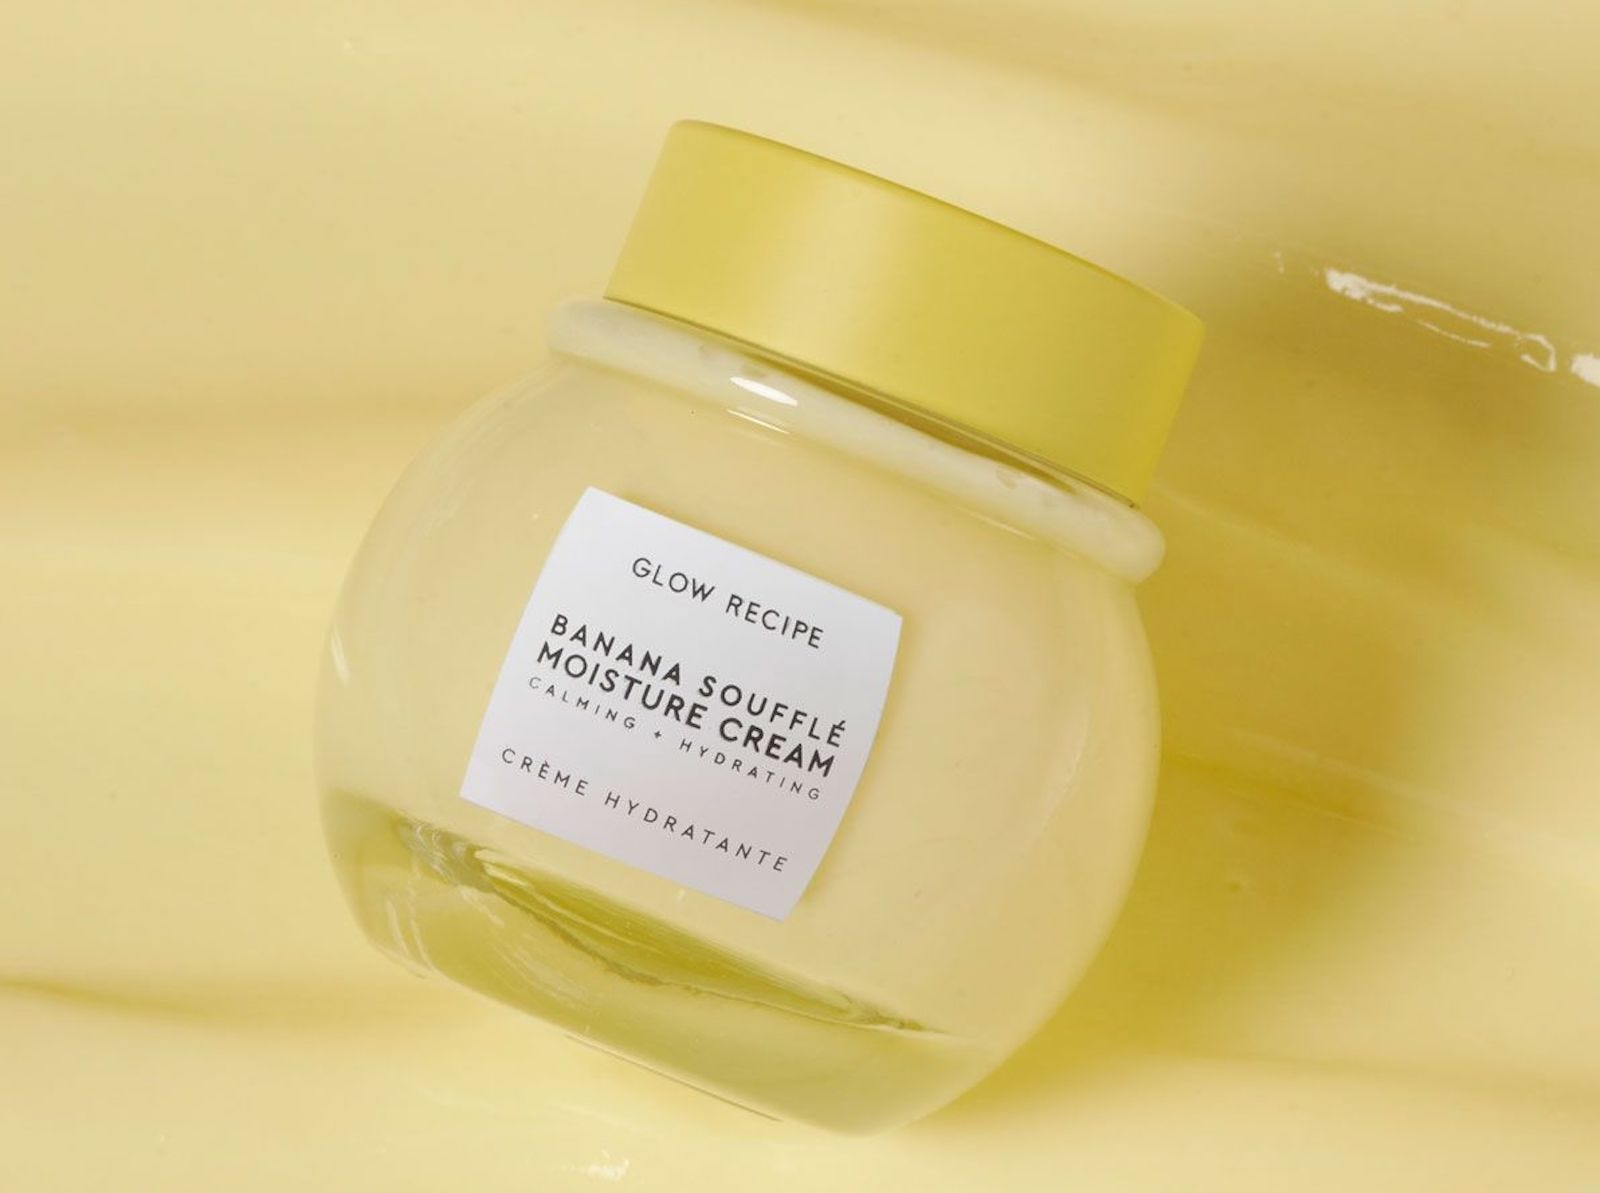 A jar of pale yellow cream, set against a pale yellow background